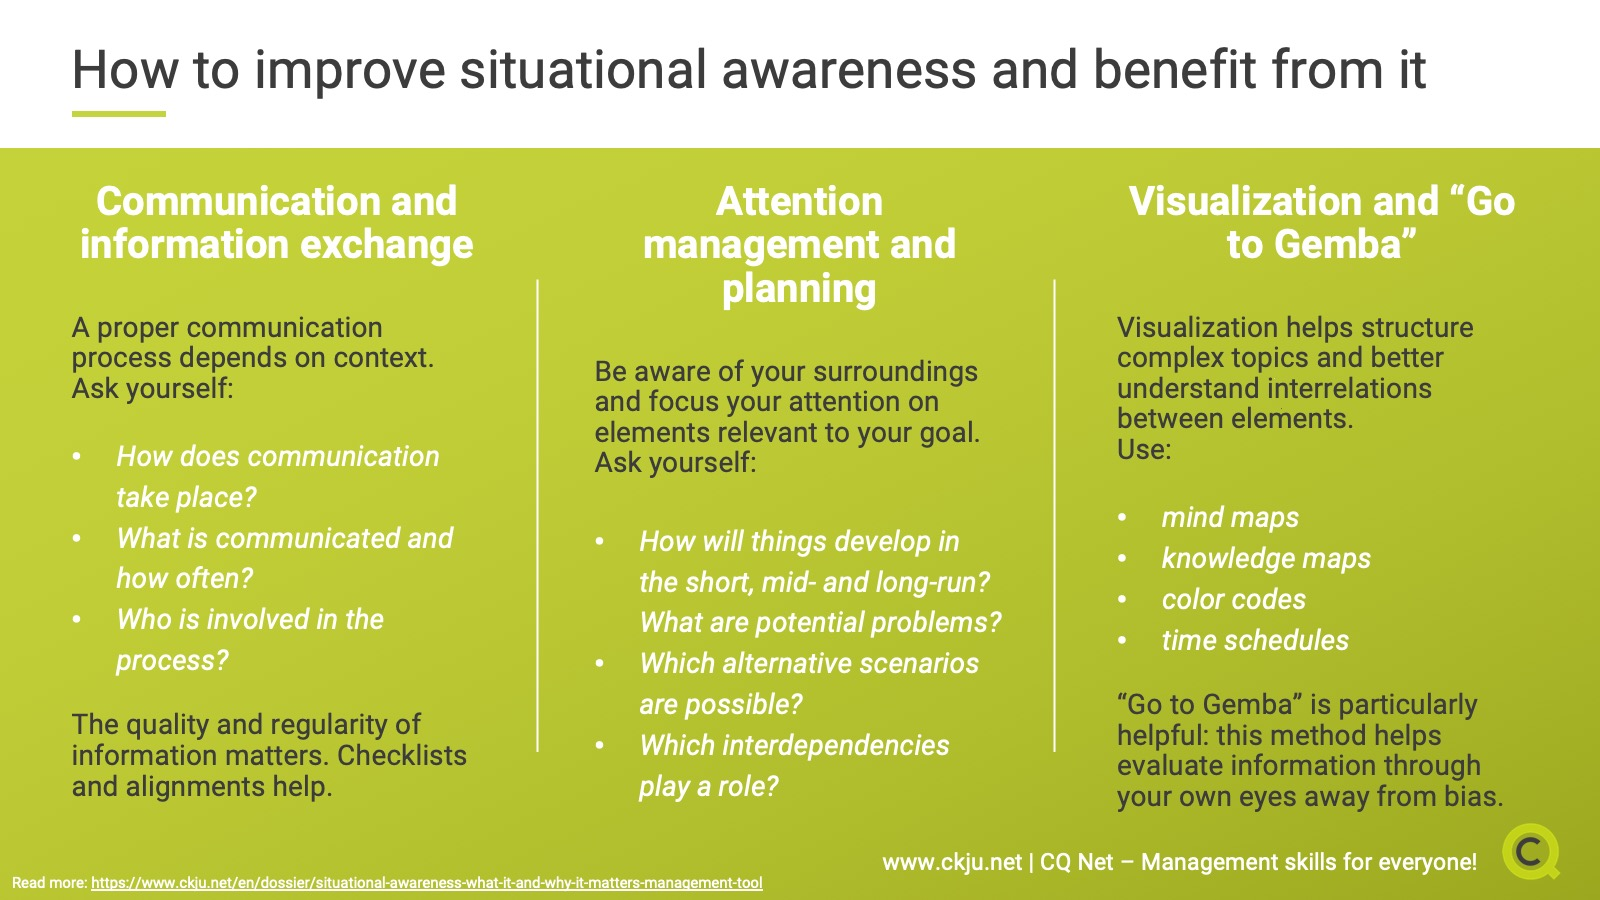 How to improve situational awareness and benefit from it